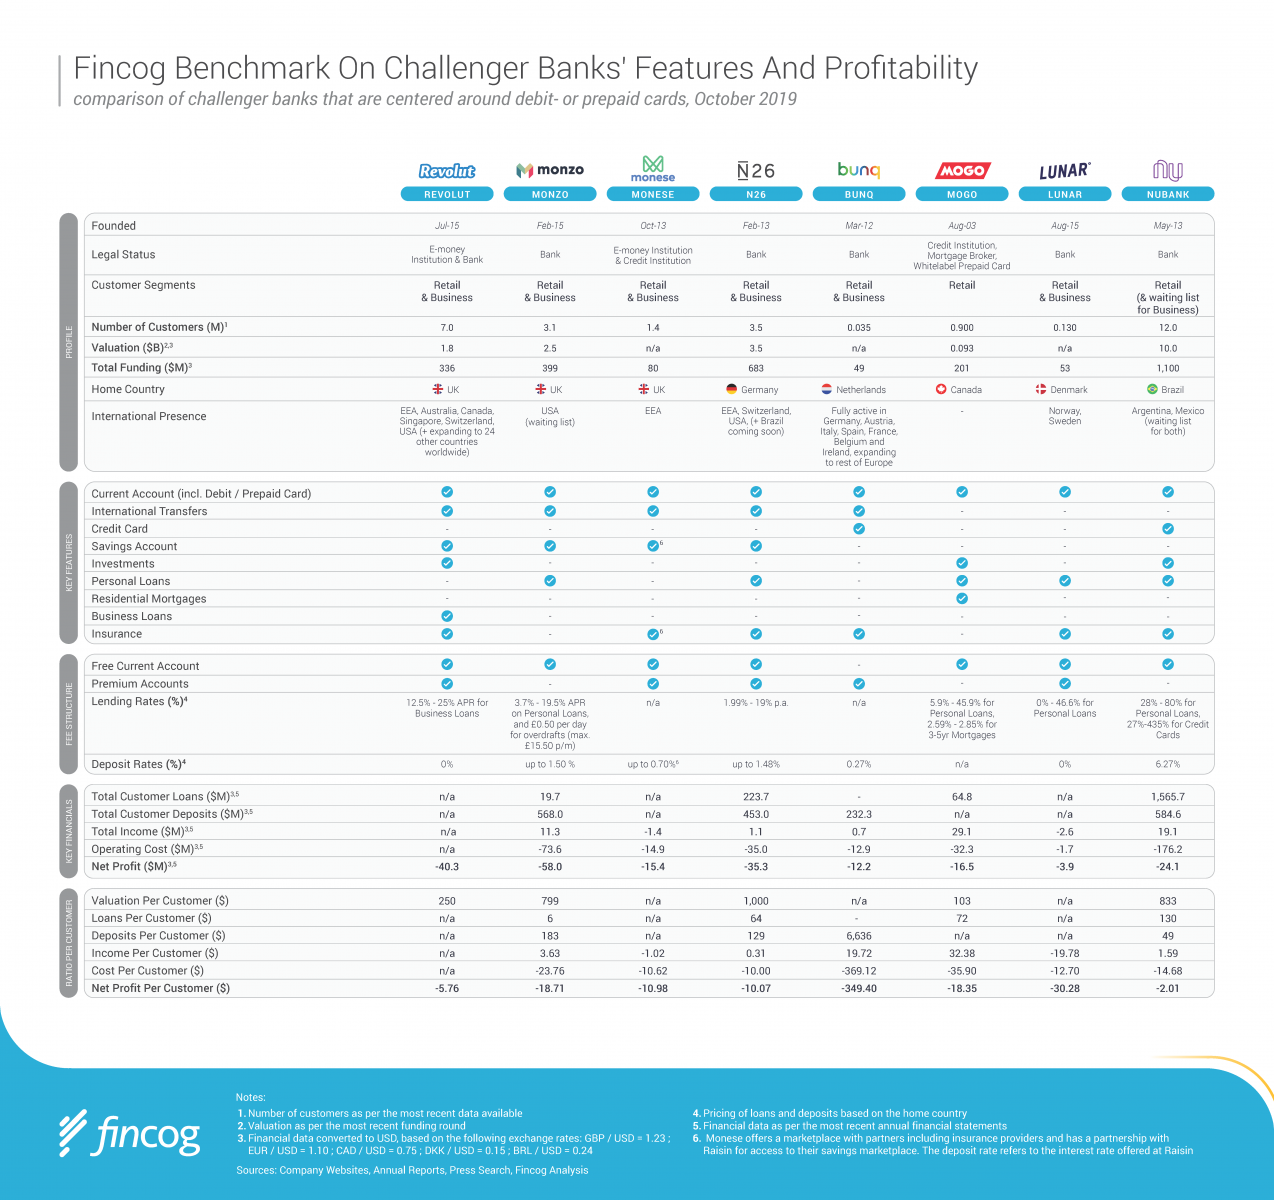 Fincog Benchmark on Challenger Banks' Features and Profitability, October 2019